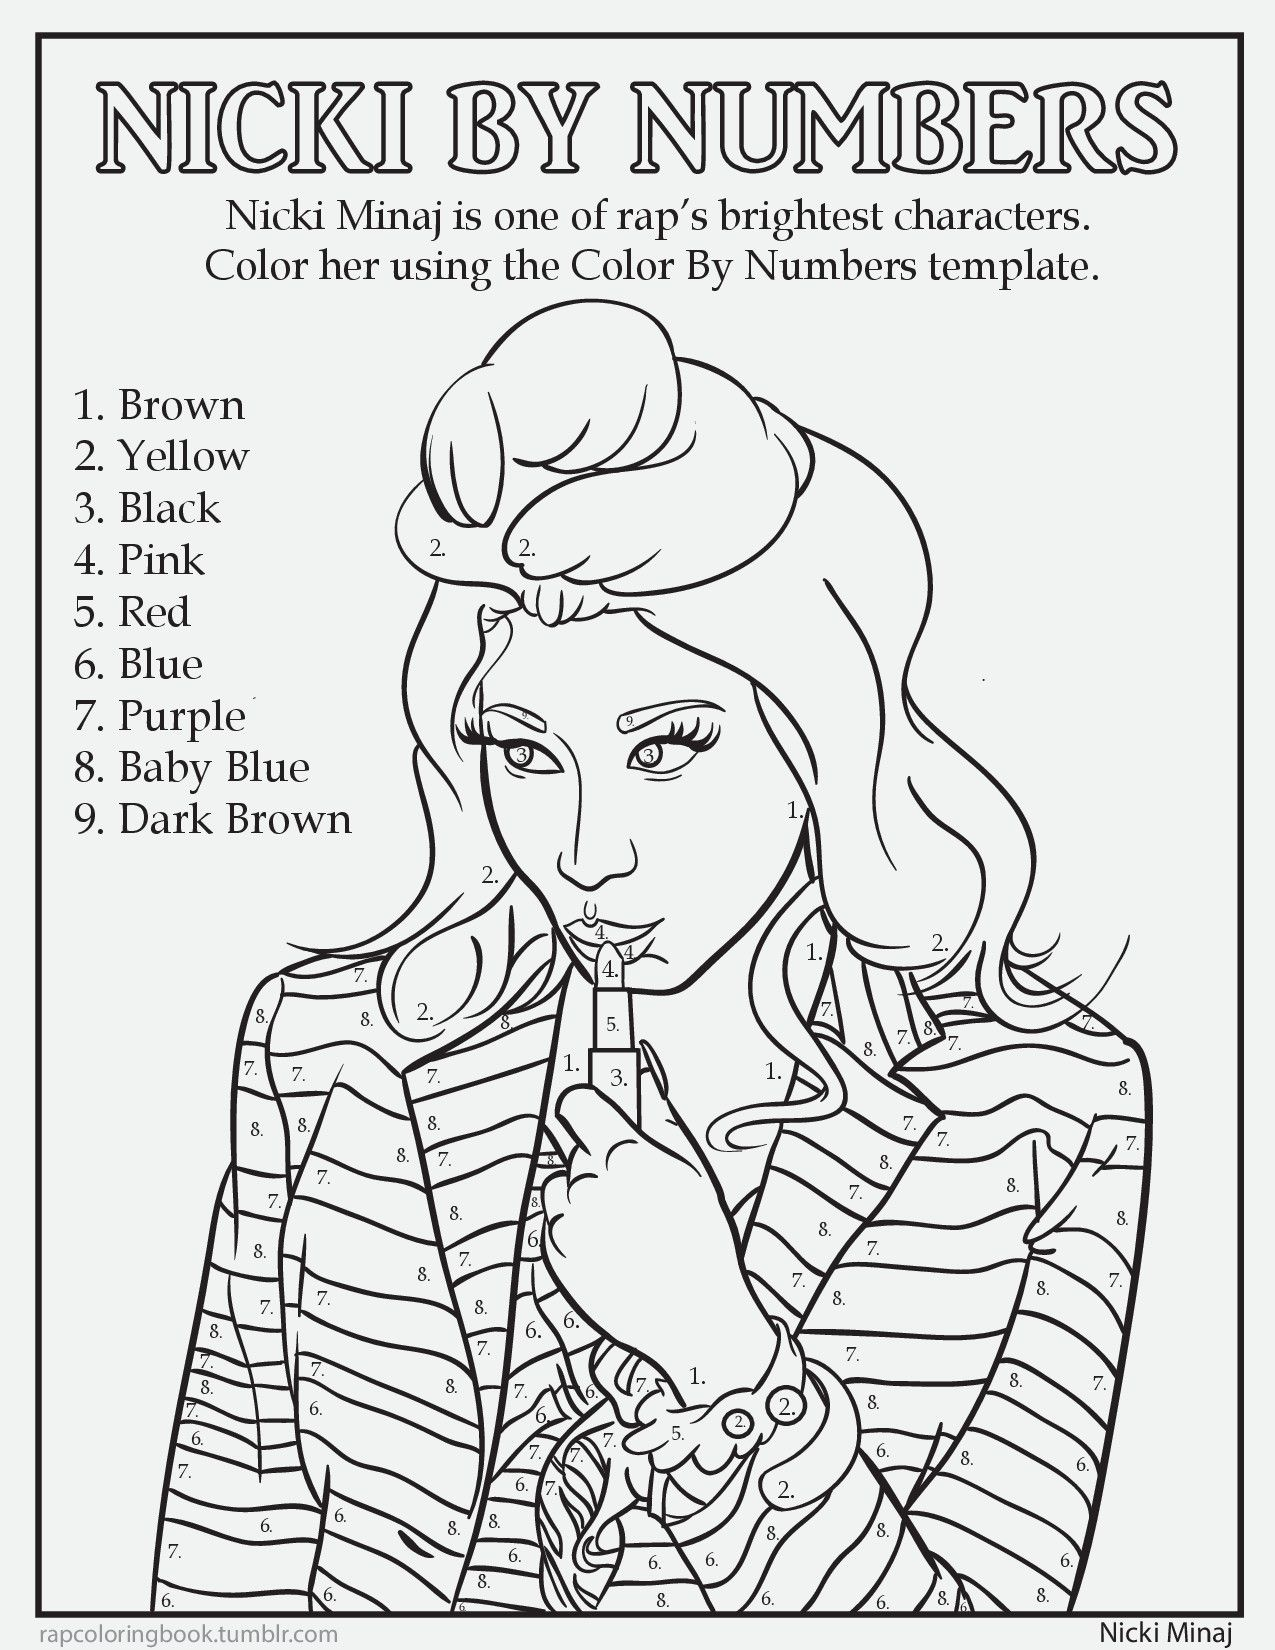 Rap Music Coloring Book The Artist Who Is Doing This Very Funny And